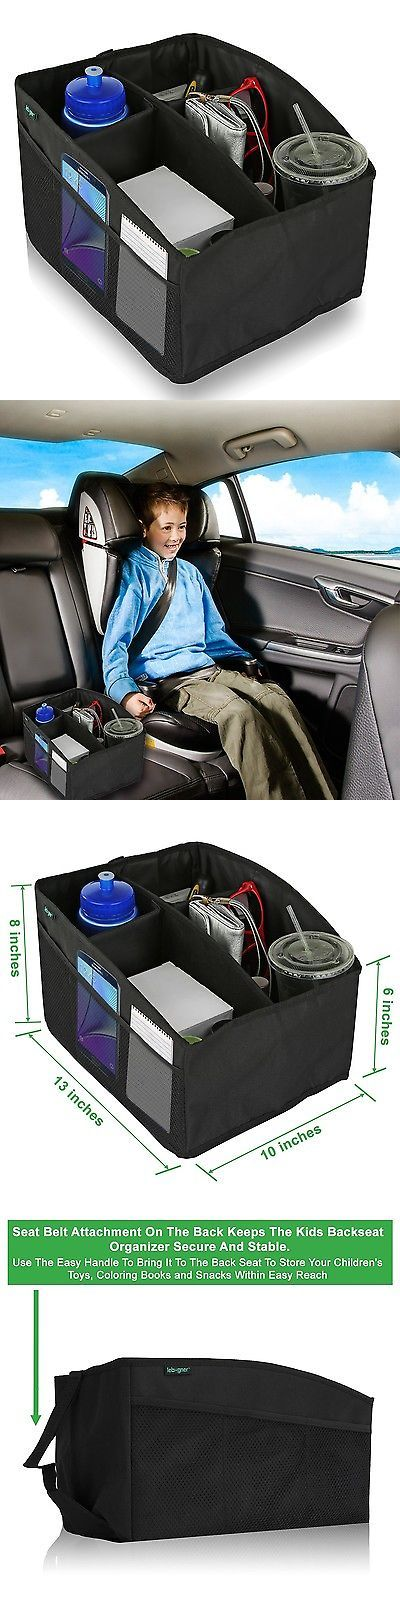 Luxury Cars: Car Console Organizer By Lebogner - Luxury Car Organizer Perfect Front Seat O... BUY IT NOW ONLY: $28.45